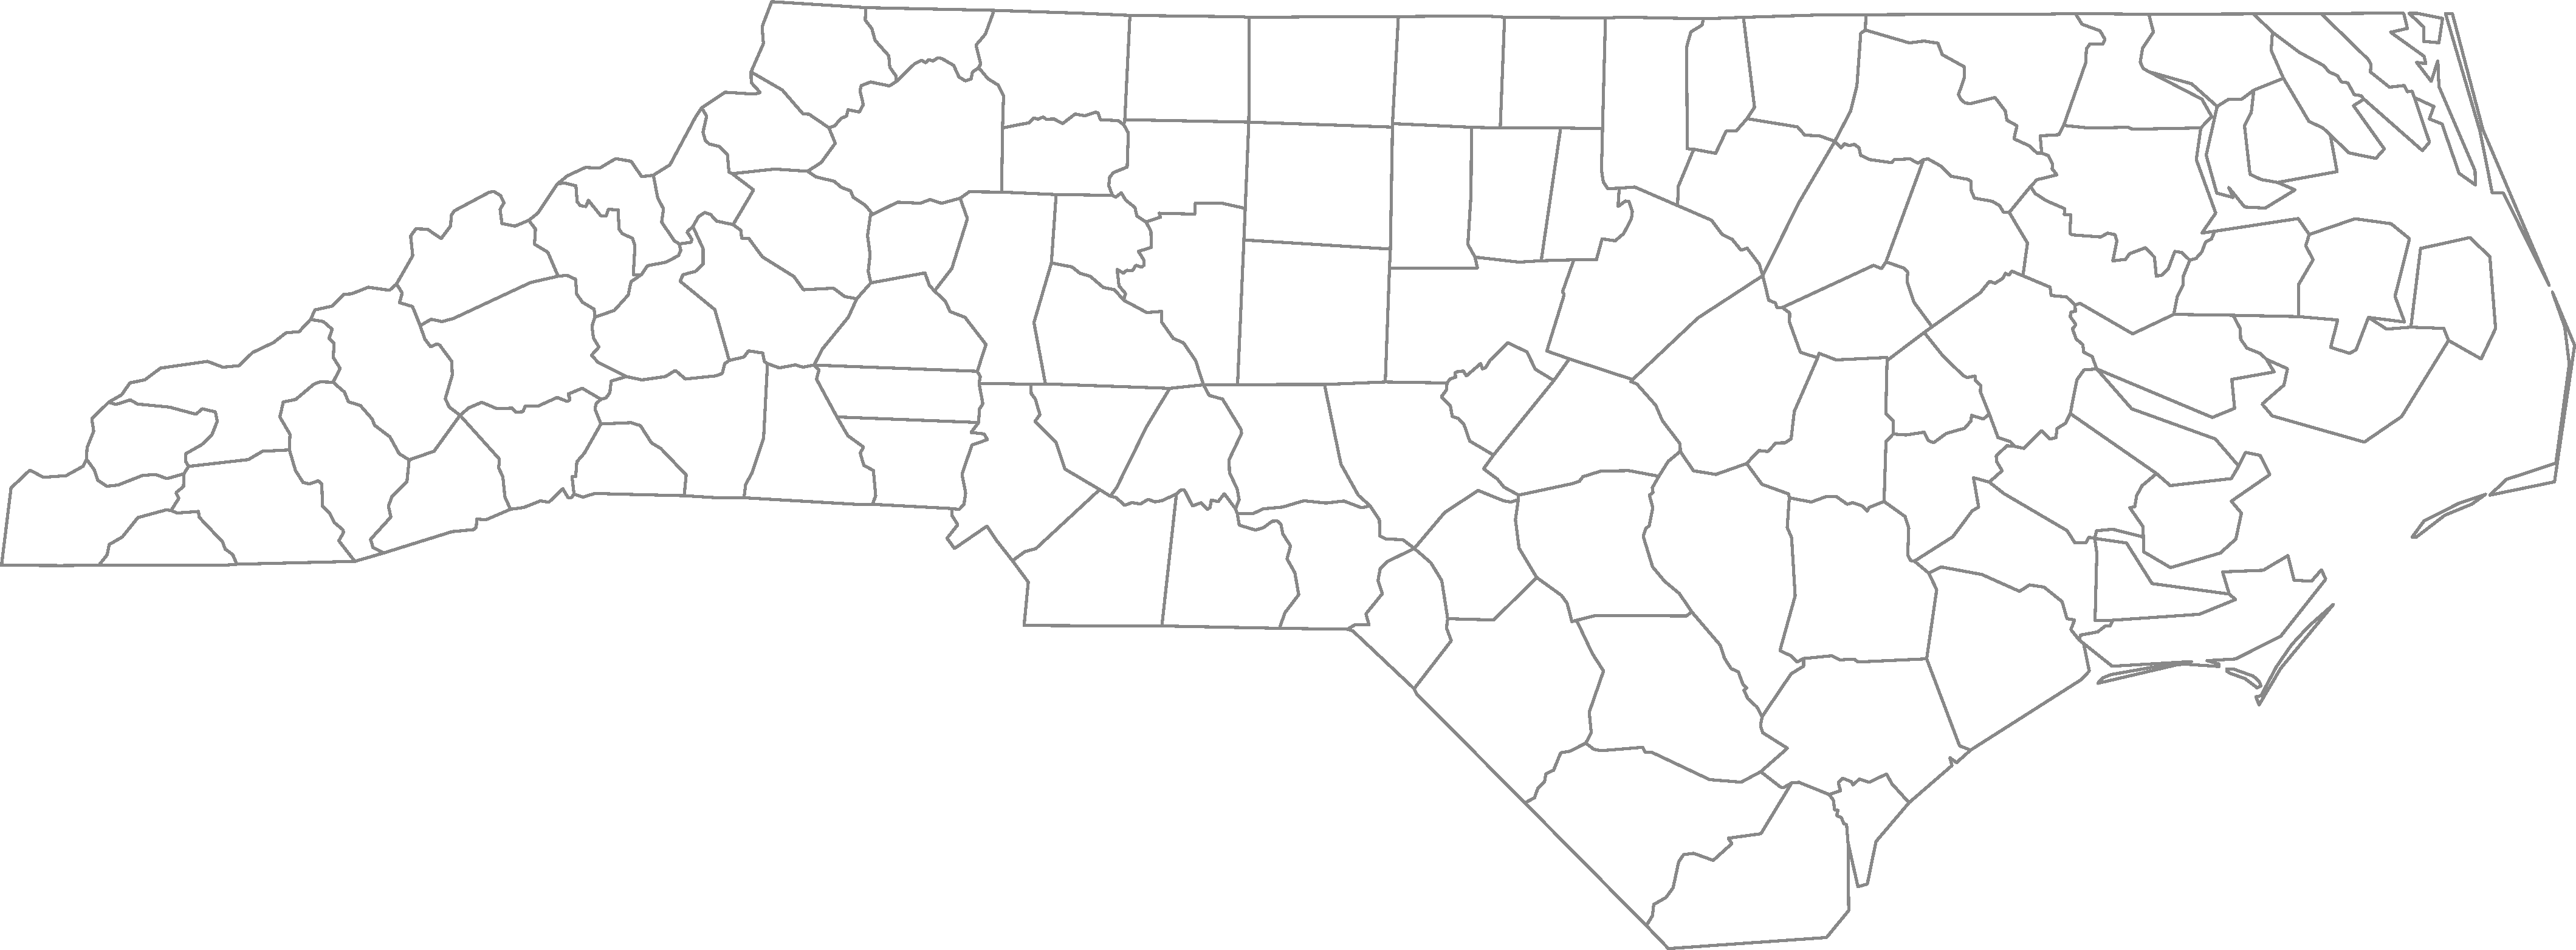 Our Members - North Carolina\'s Electric Cooperatives | North ...